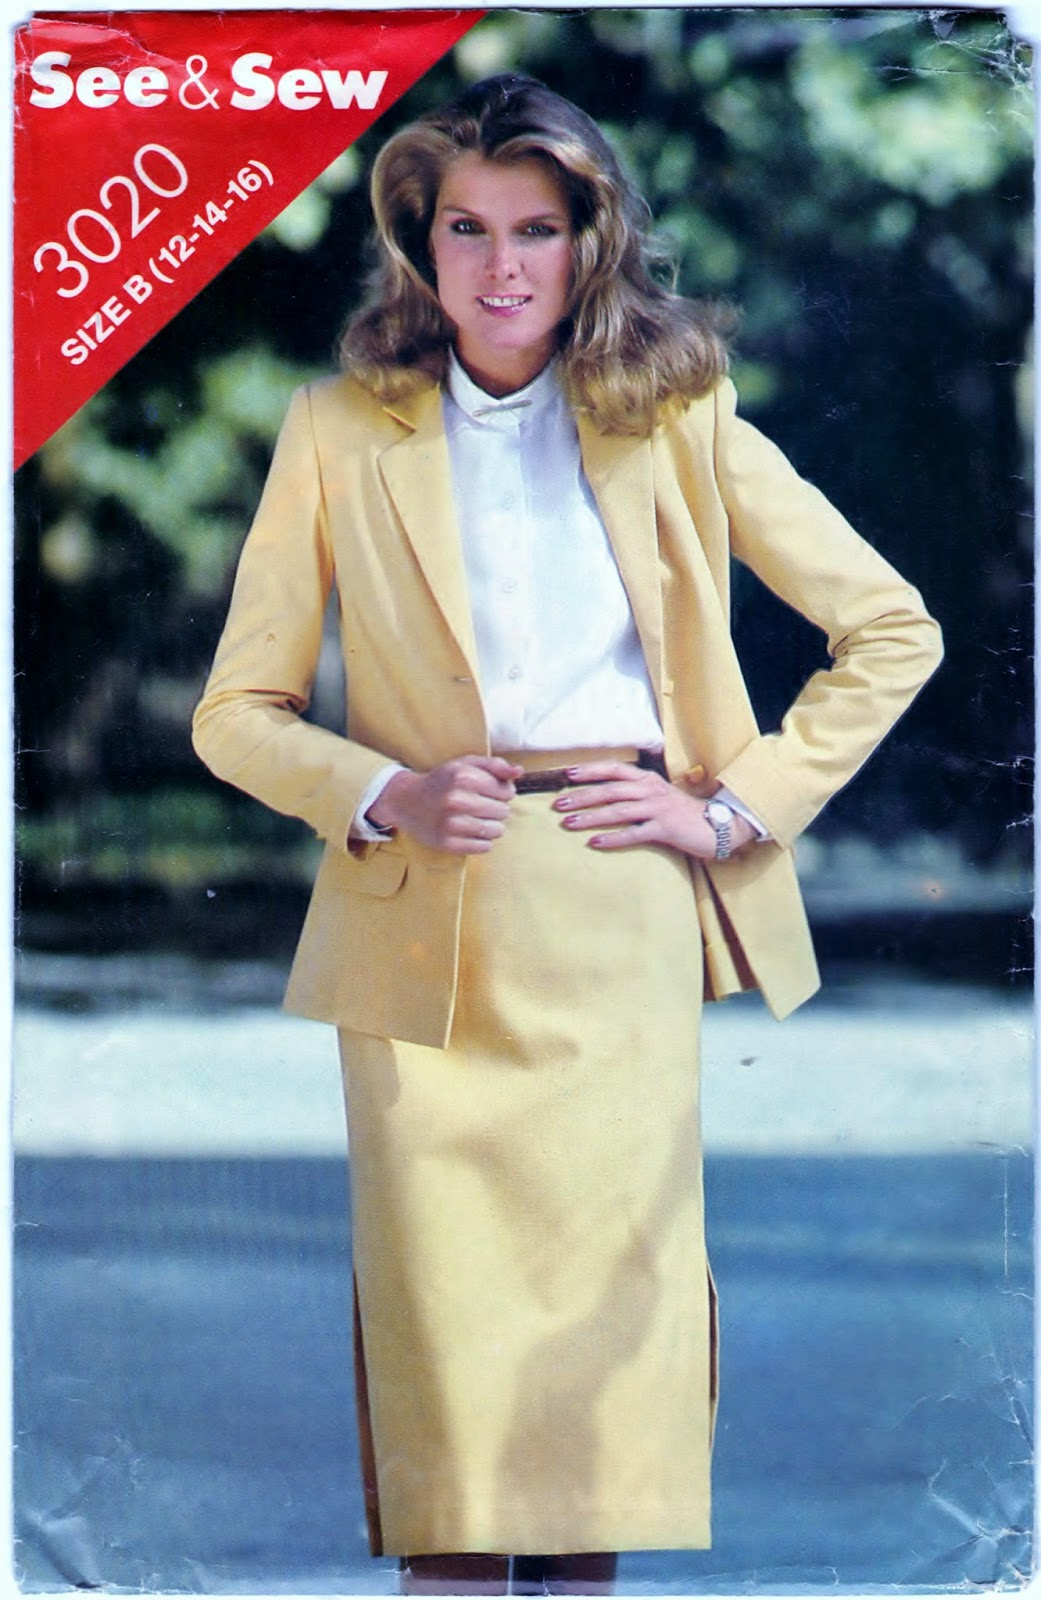 https://www.etsy.com/listing/209727576/butterick-see-and-sew-diy-sewing-craft